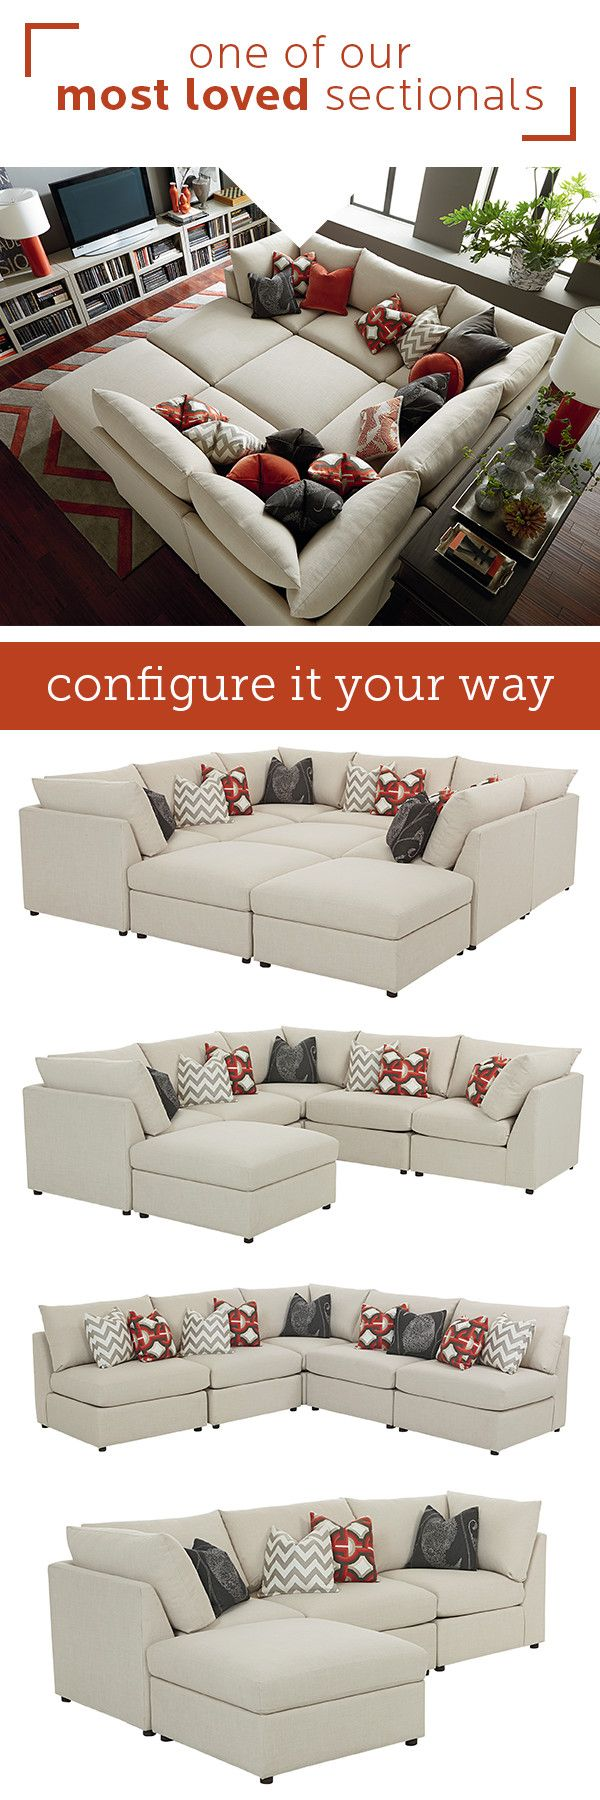 A Transitional Modular Sectional With Endless Possibilities. Beckham Has  Limited Skus But Can Transform Into